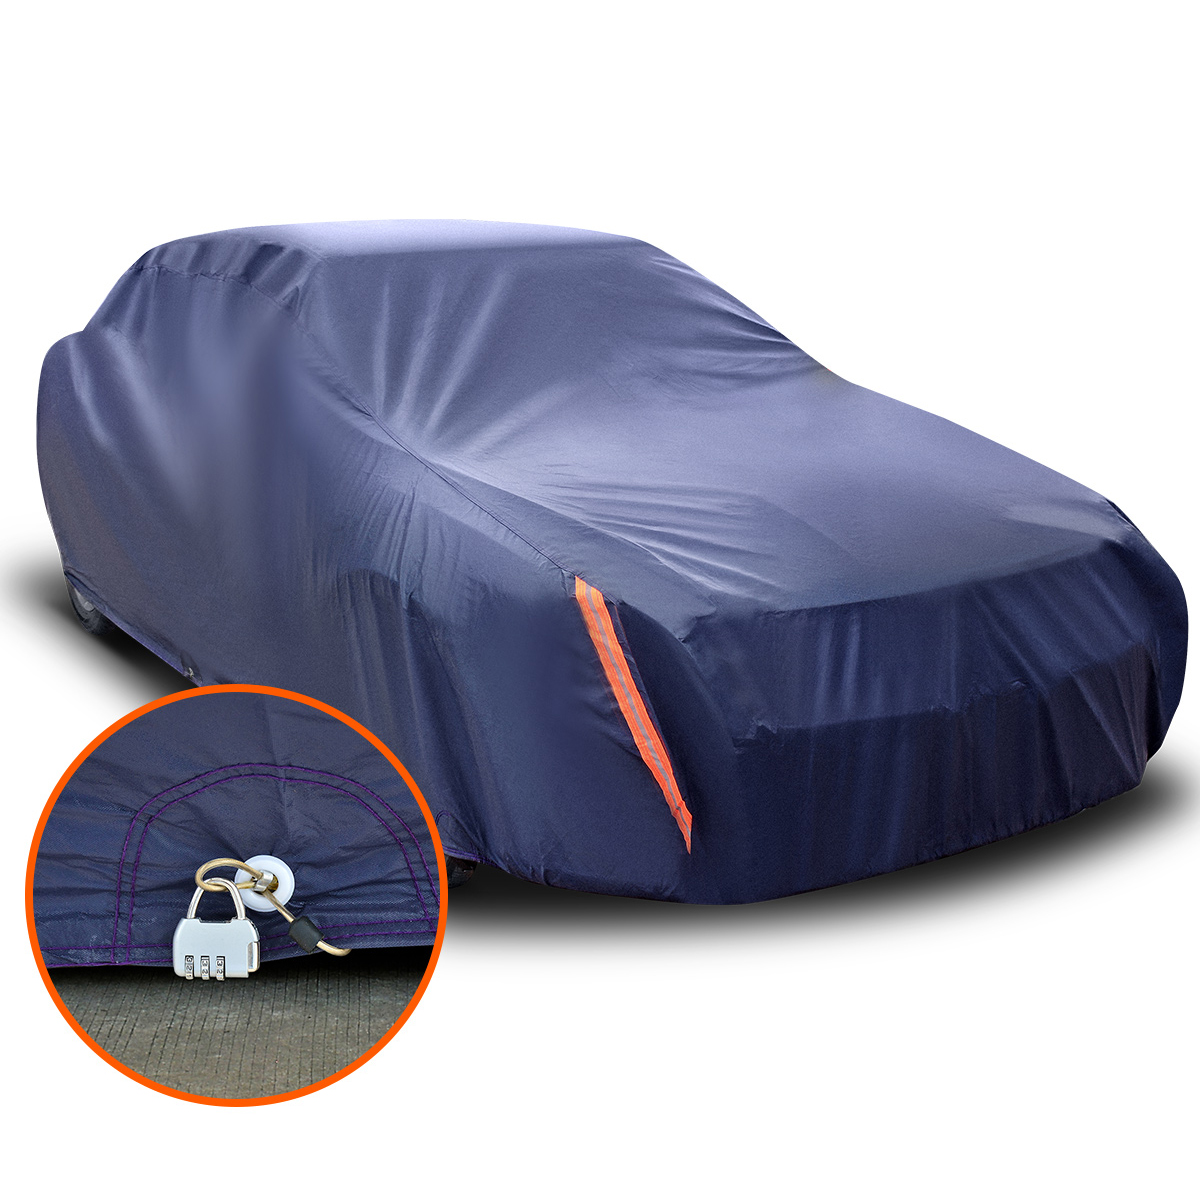 MEDIUM SIZE FULL CAR COVER UV PROTECTION WATERPROOF OUTDOOR BREATHABLE PEVA